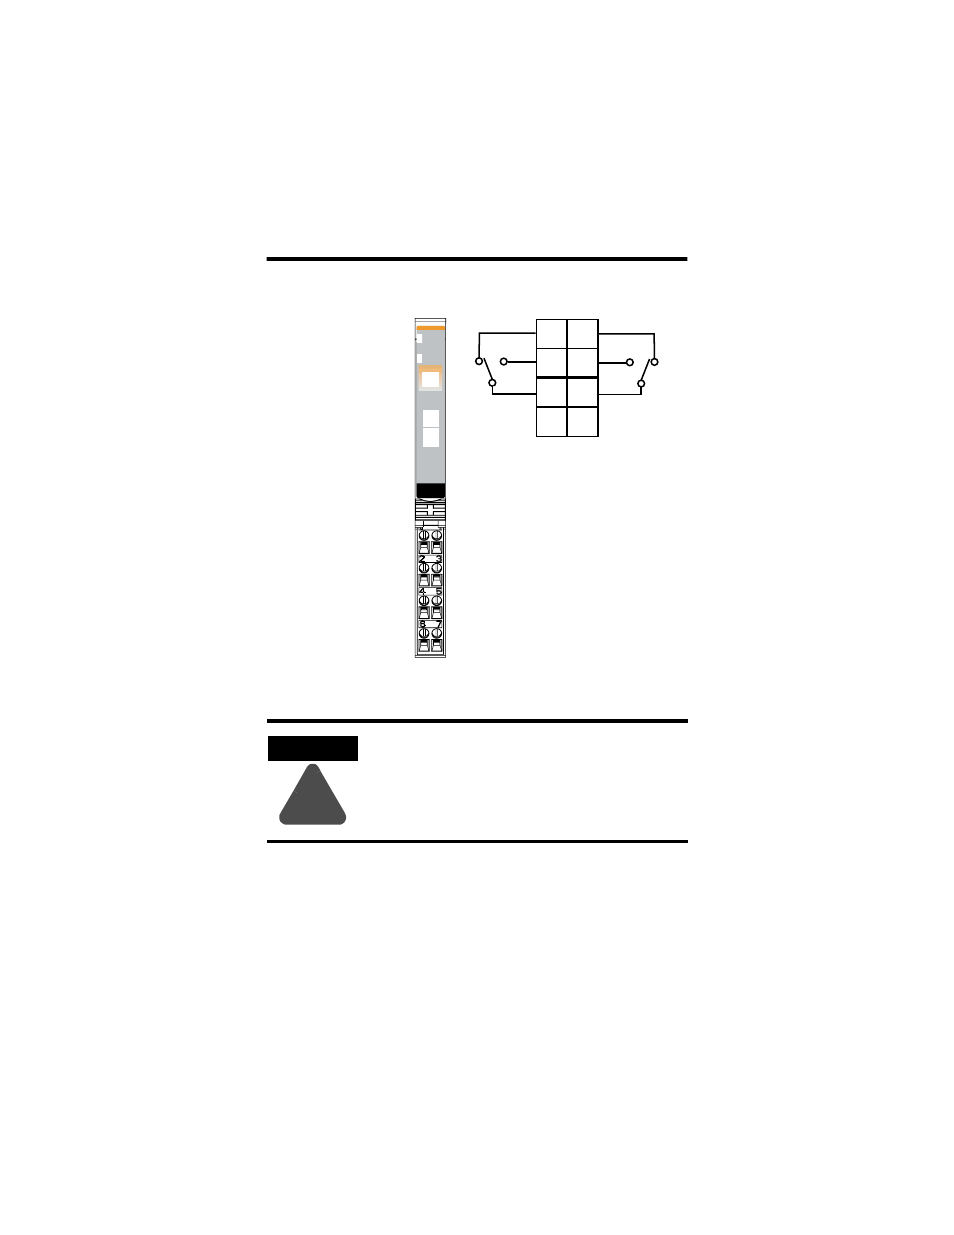 Wiring The Relay Output Module Rockwell Automation OXC - Normally open normally closed common relay